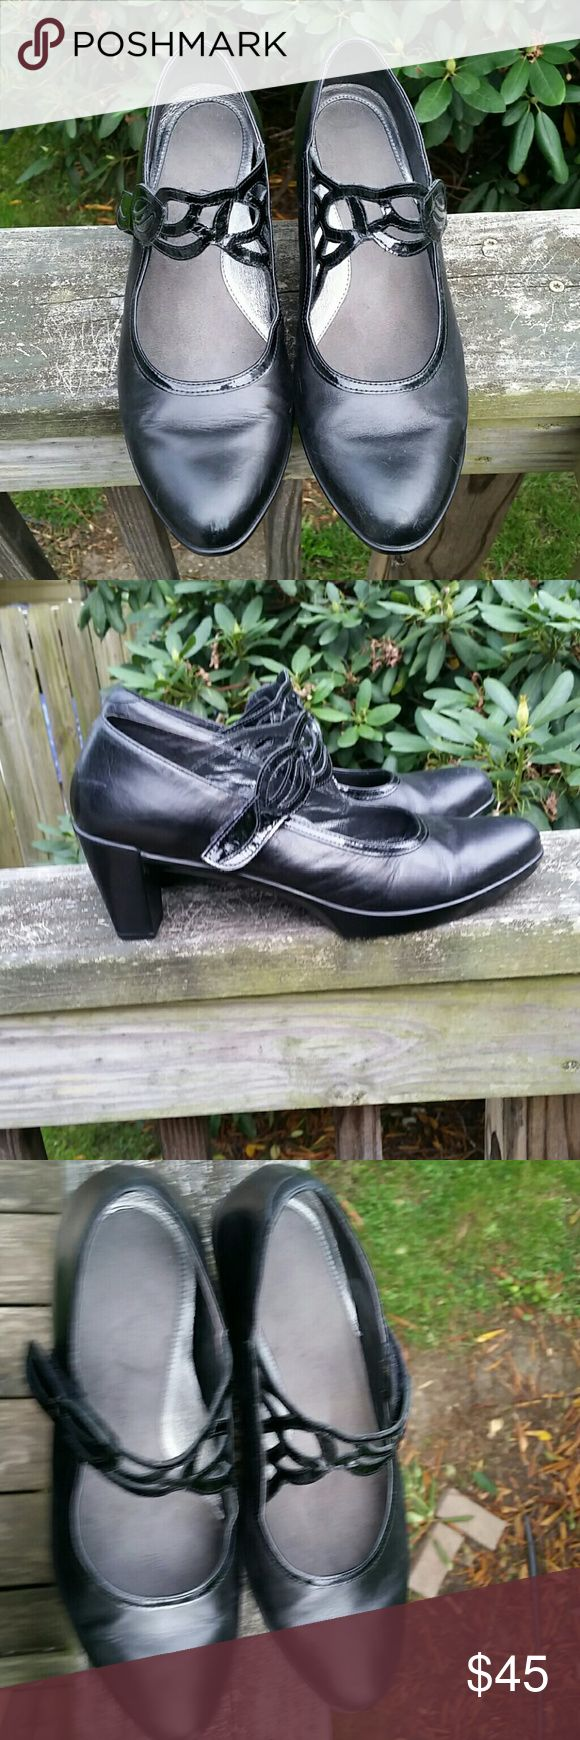 "NAOT ""Luma"" Dress Shoe size 11 Preowned Naot brand leather/patent leather heels ***Women's size 11 (THEY SEEM TO RUN SMALL,  they fit more like a 10--these fit me with no problem, I am a size 10 2 3/4"" heel with 1/2"" platform In good condition Naot Shoes Heels"